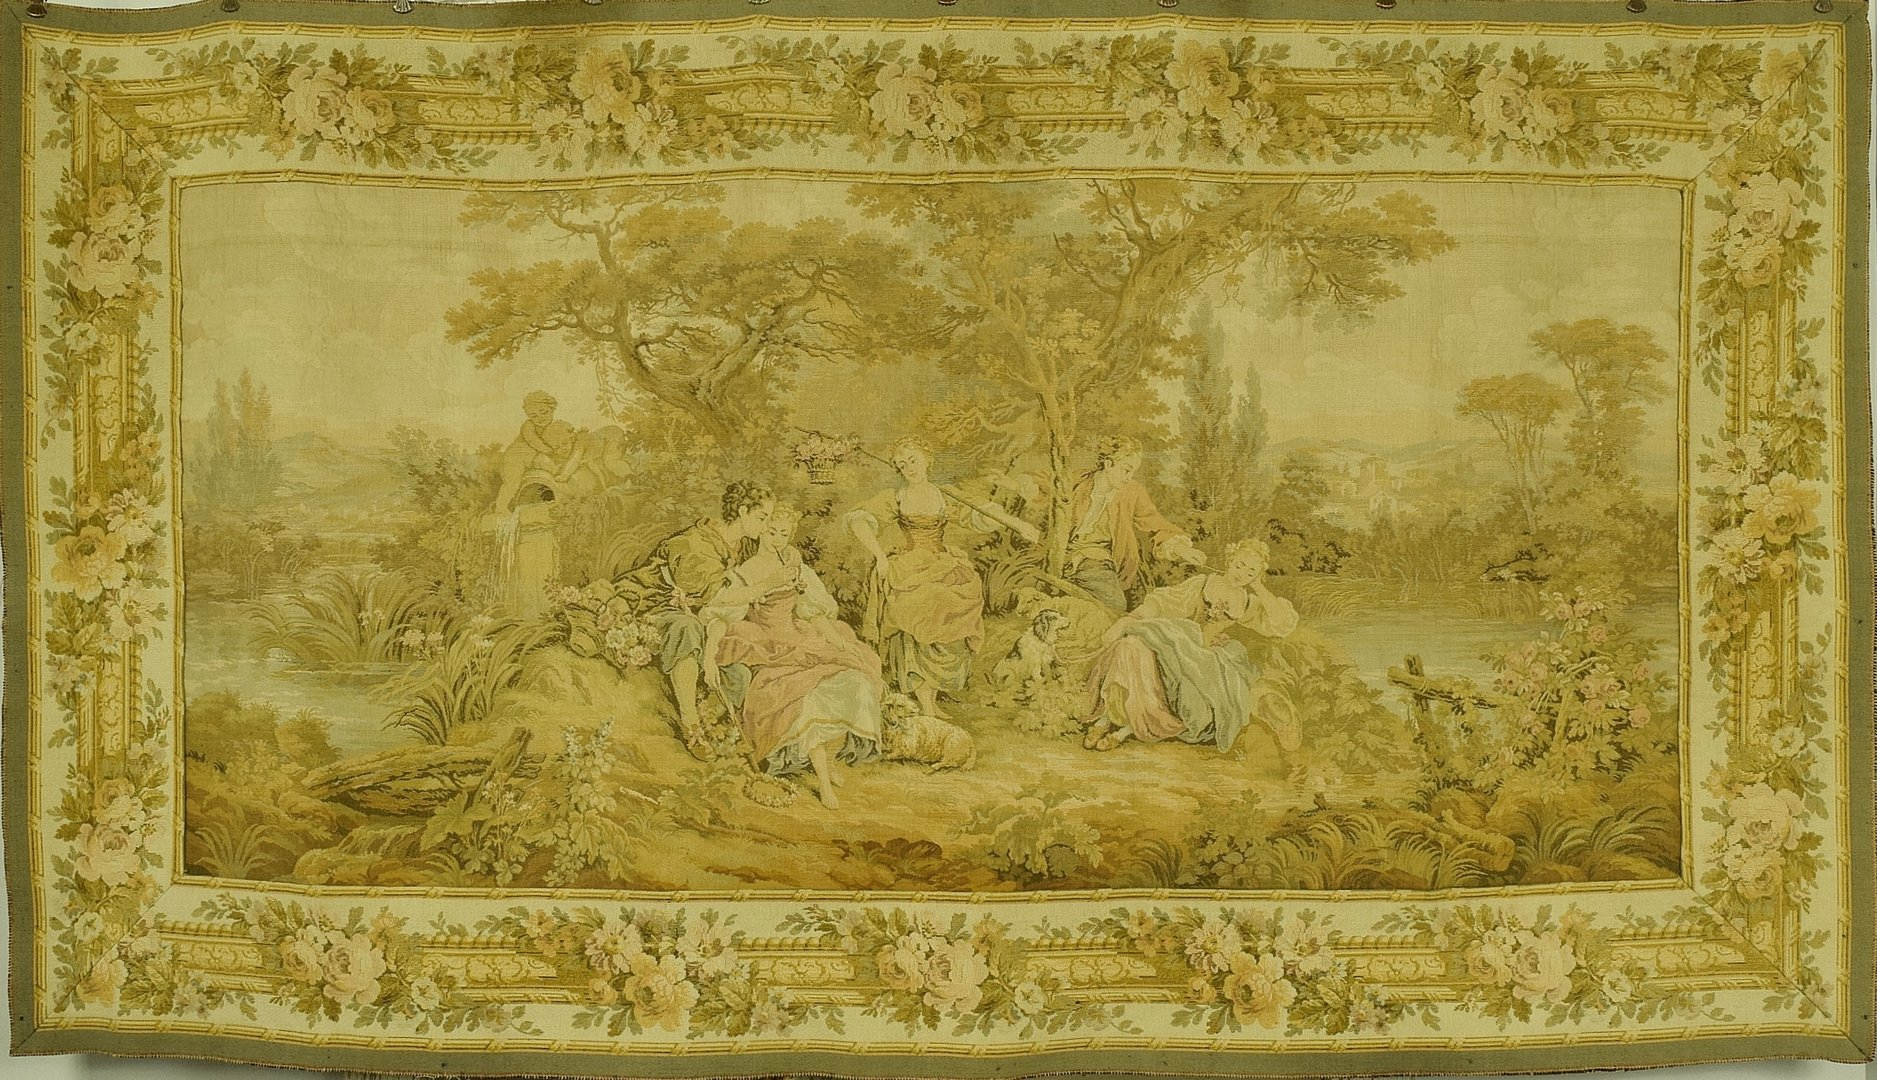 B1063 - Gorgeous Vintage French Tapestry Wall Hanging, 18th C Petit Trianon Jardin Scene